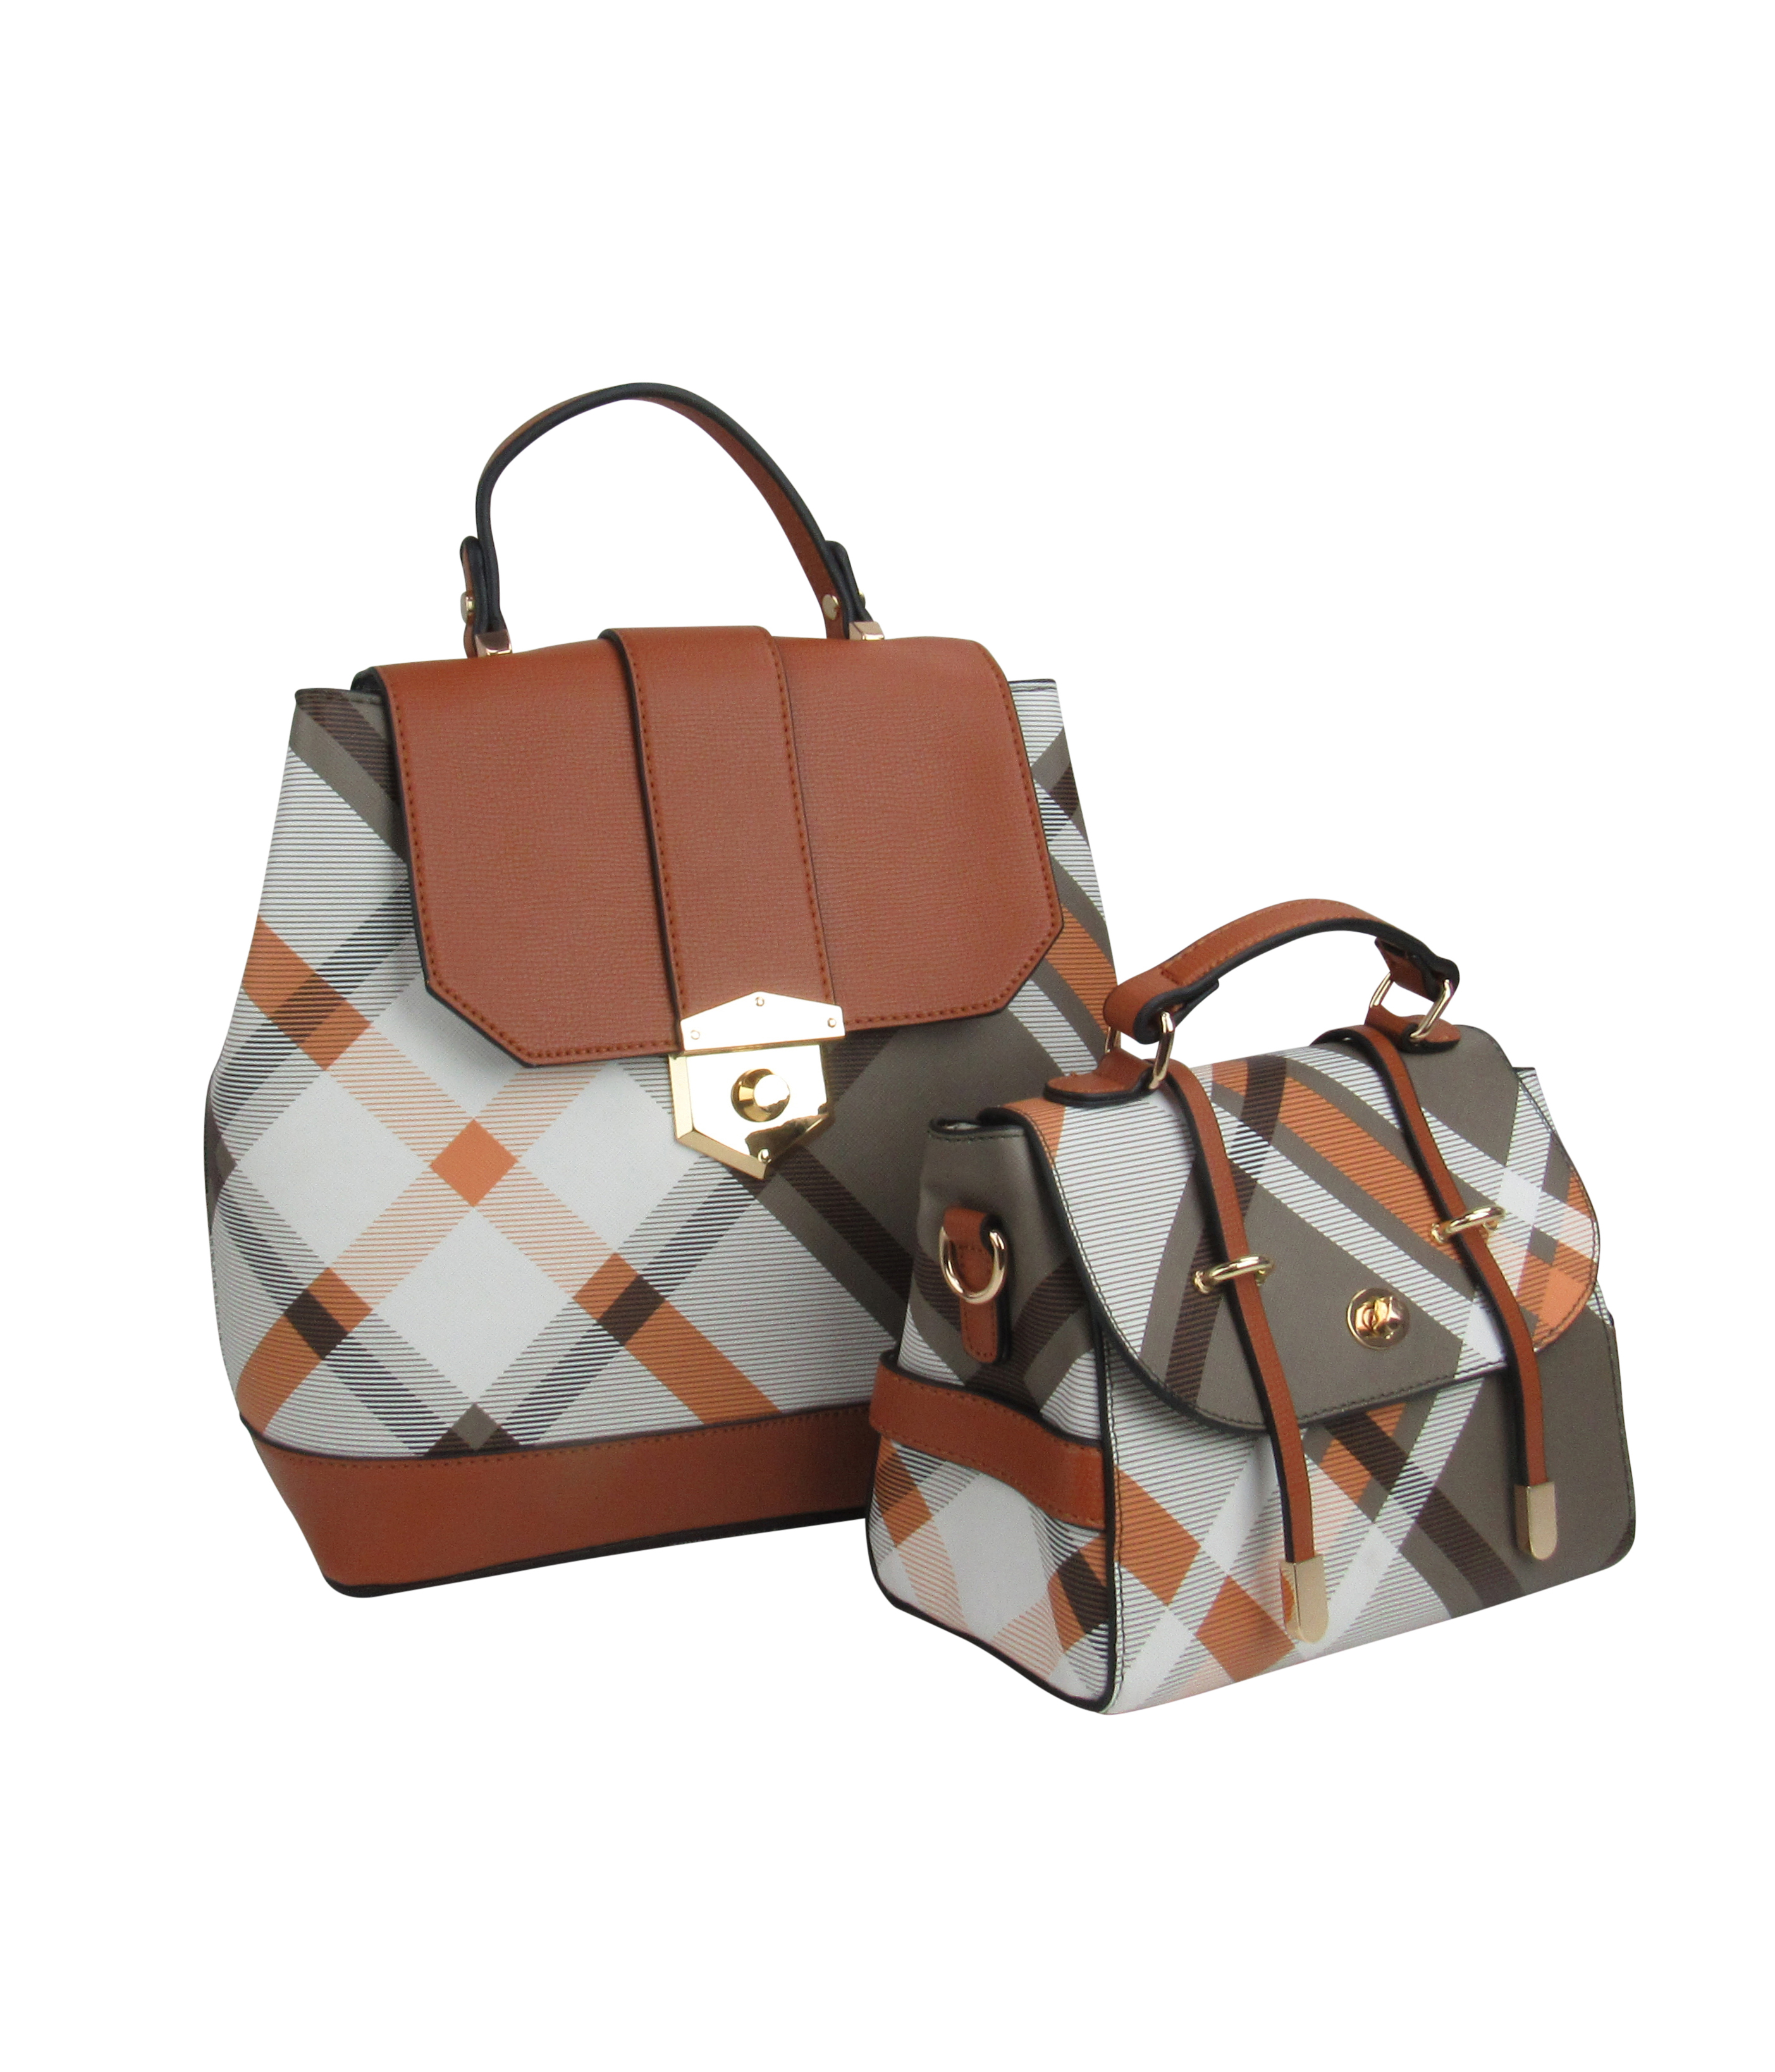 18853-1 - Wholesale Plaid Satchel 2-in-1 Tote Bag